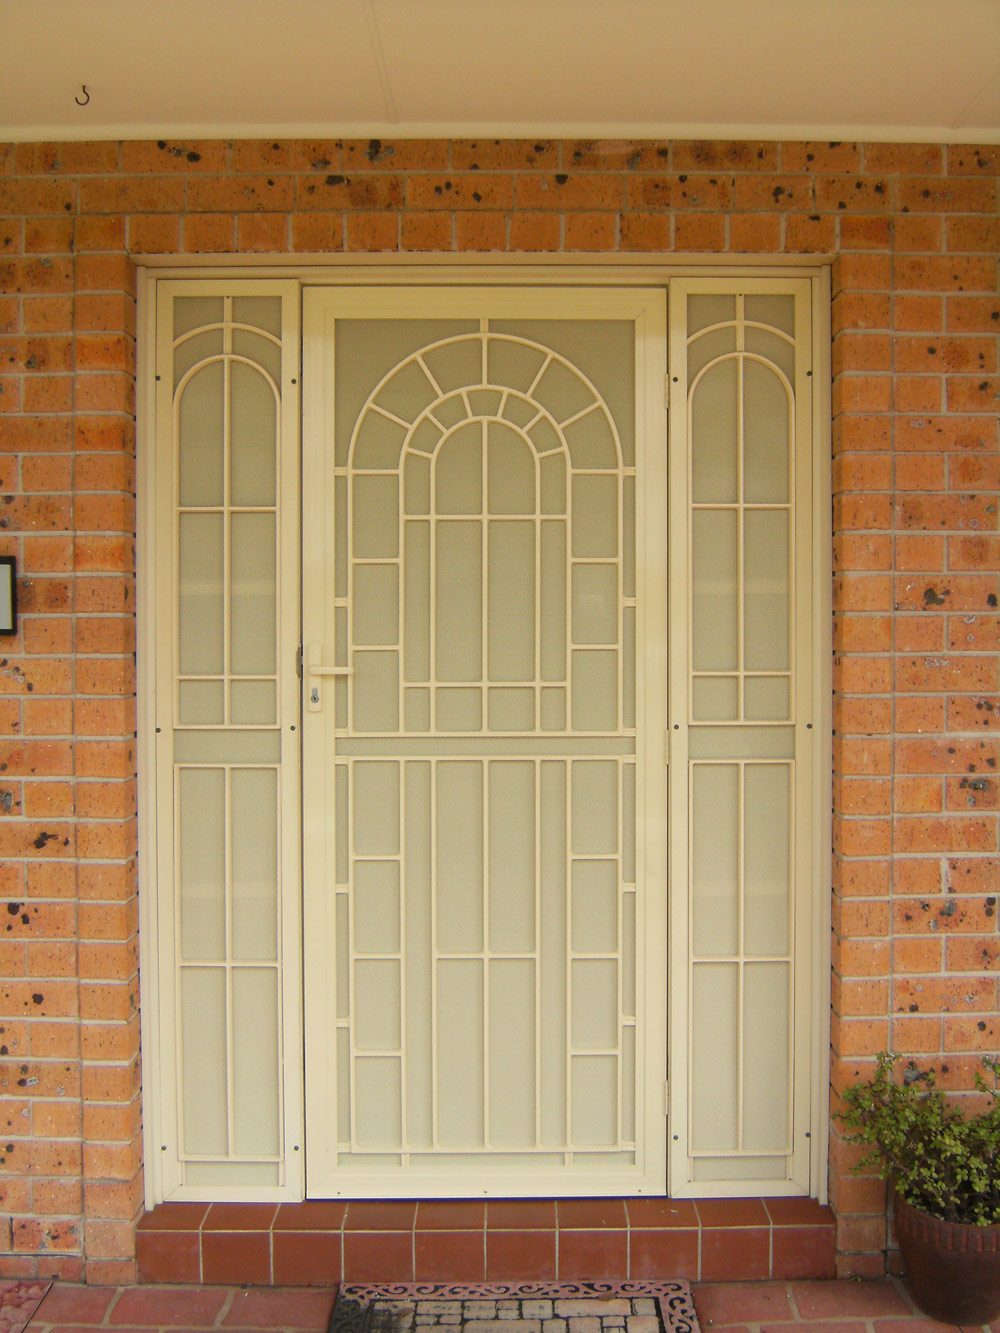 Doors With Screen: Screens & Screen Doors : Prestige Home Solutions